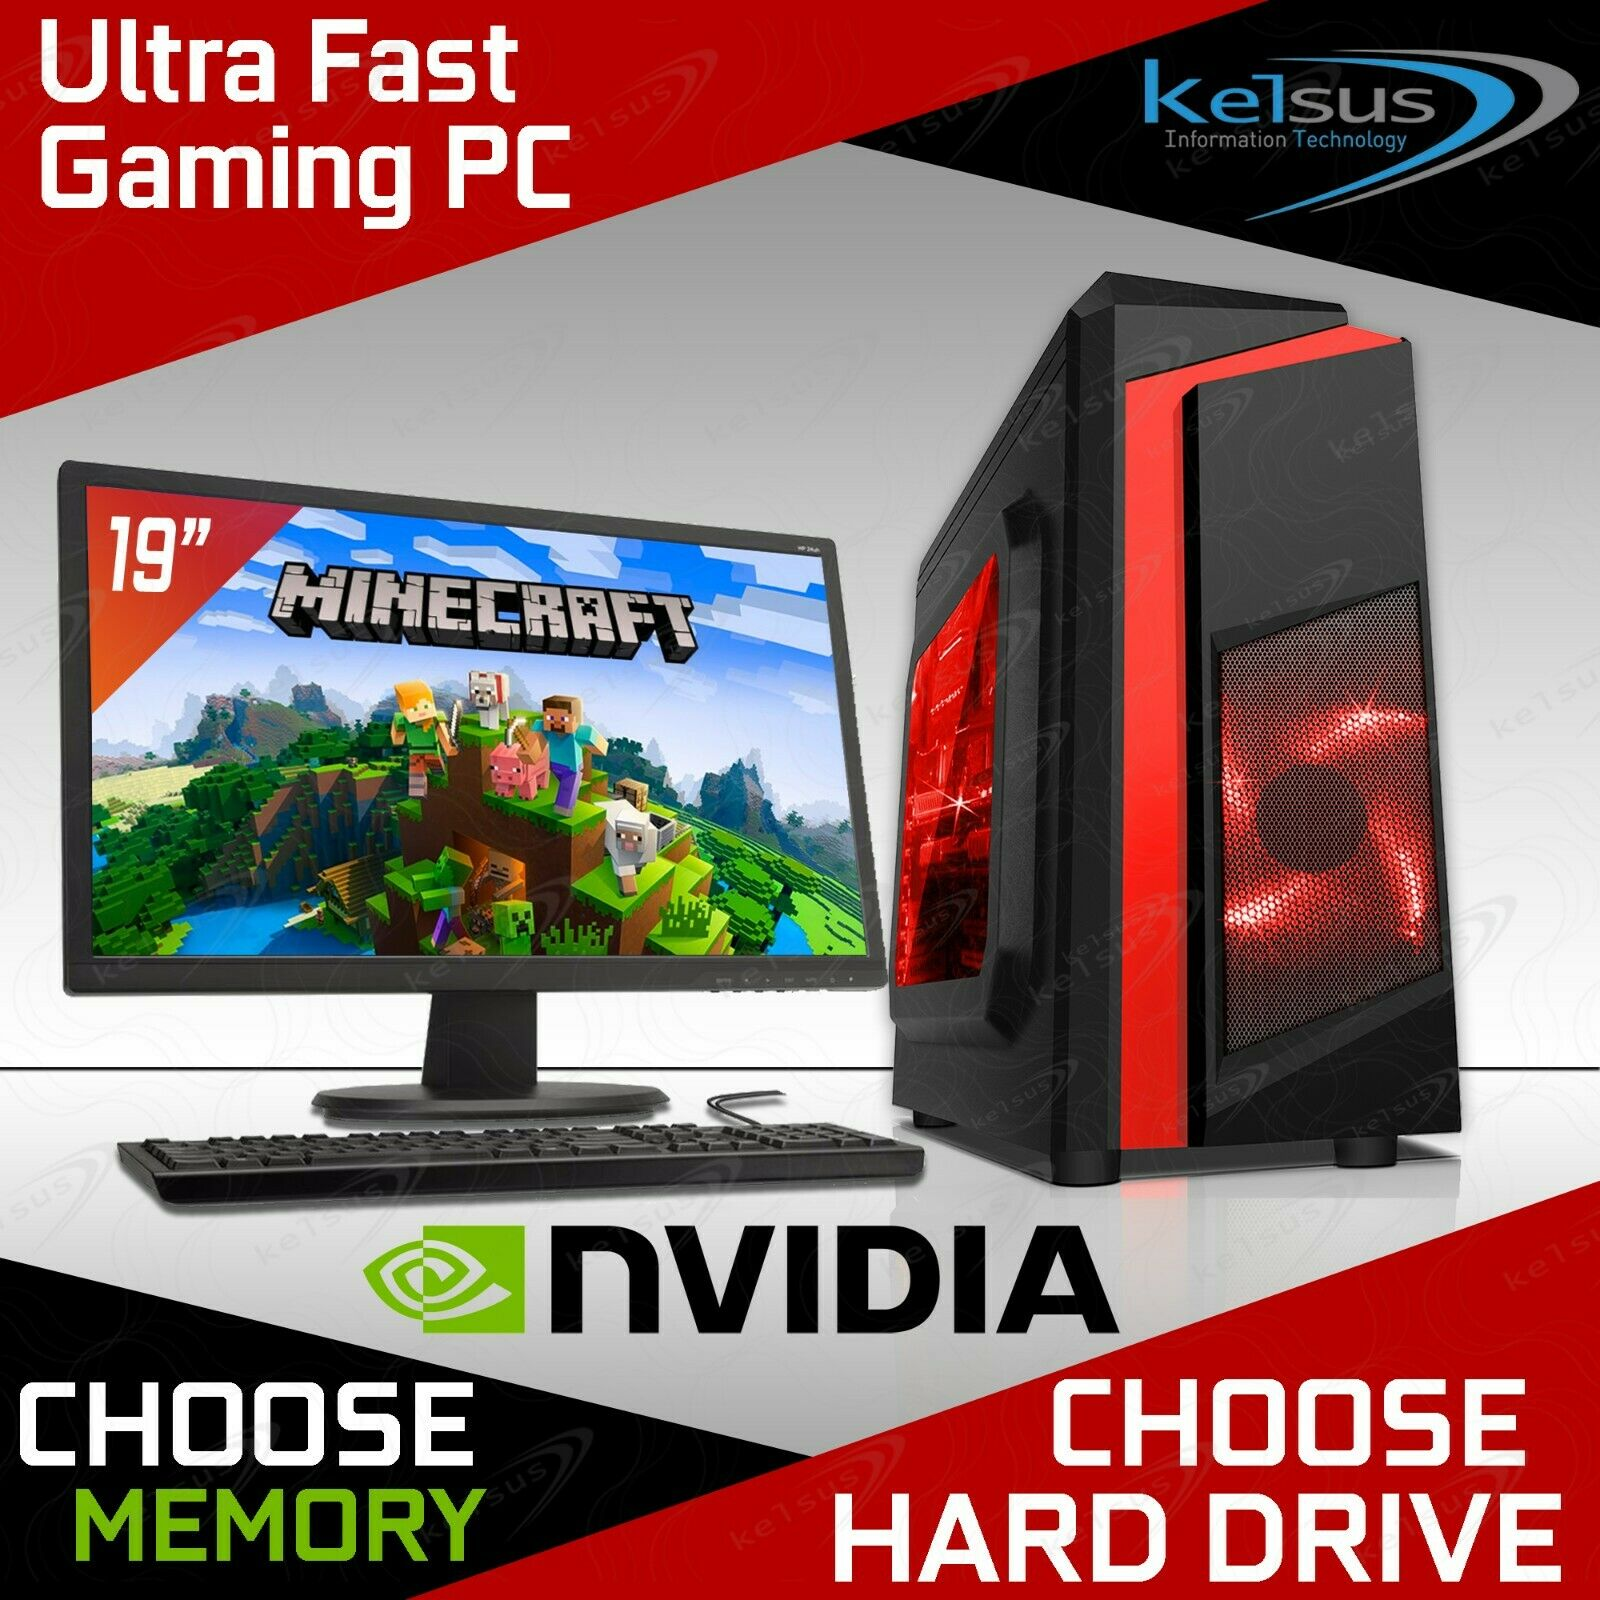 computer game - Ultra Fast Gaming PC Bundle Intel Core i5 16GB 1TB HDD Windows 10 2GB GT710